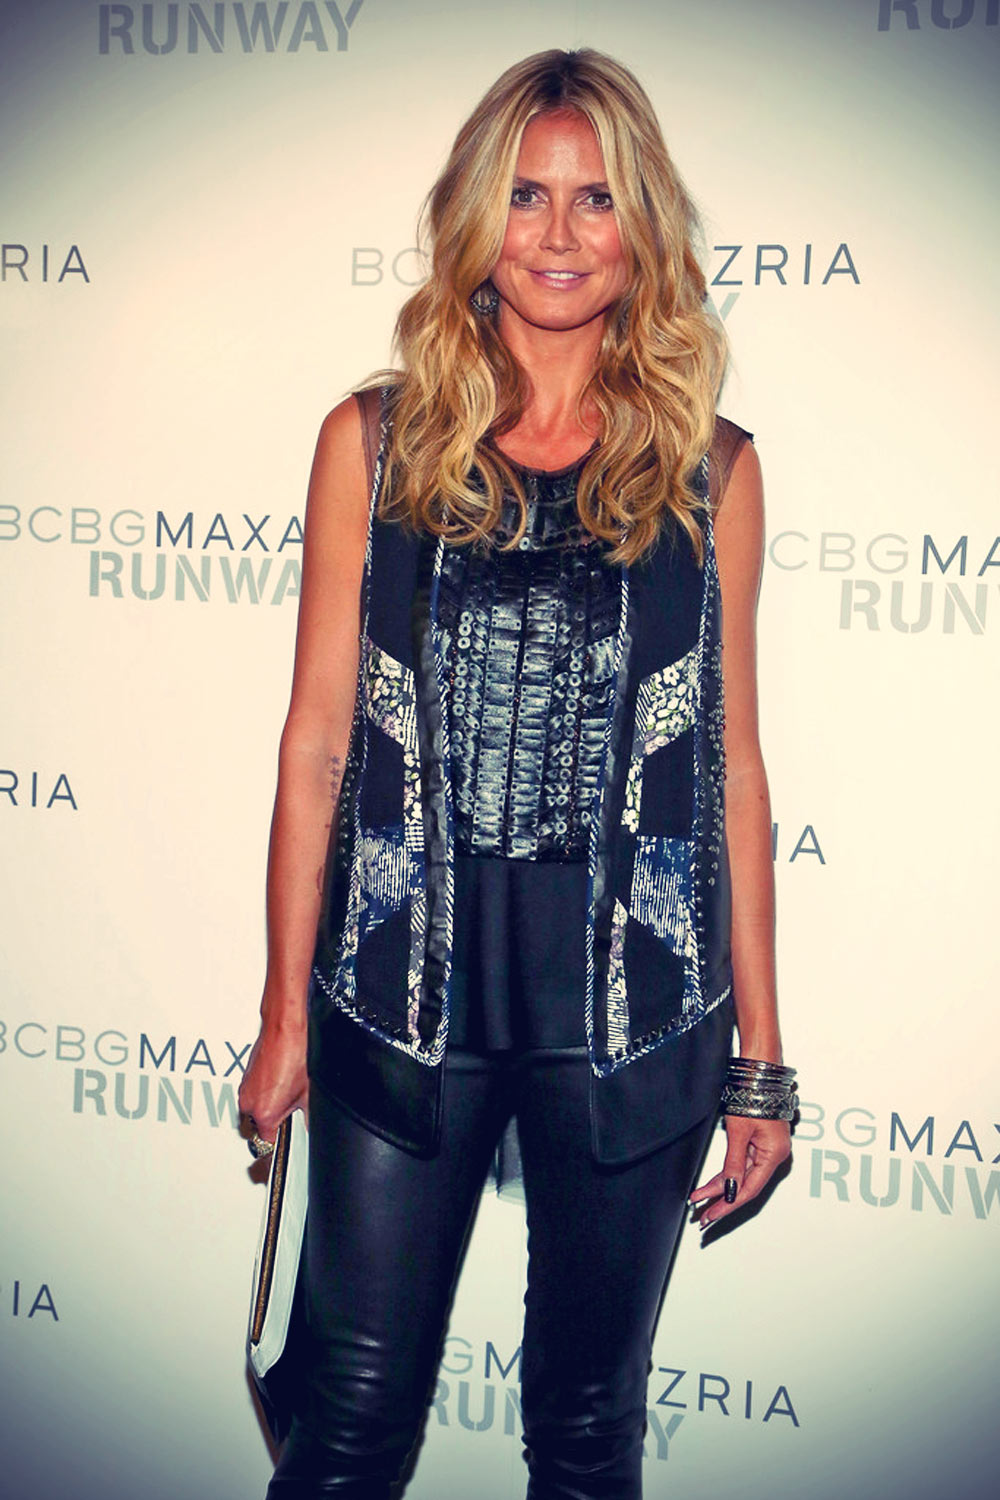 Heidi Klum attends the BCBGMAXAZRIA Spring 2014 fashion show